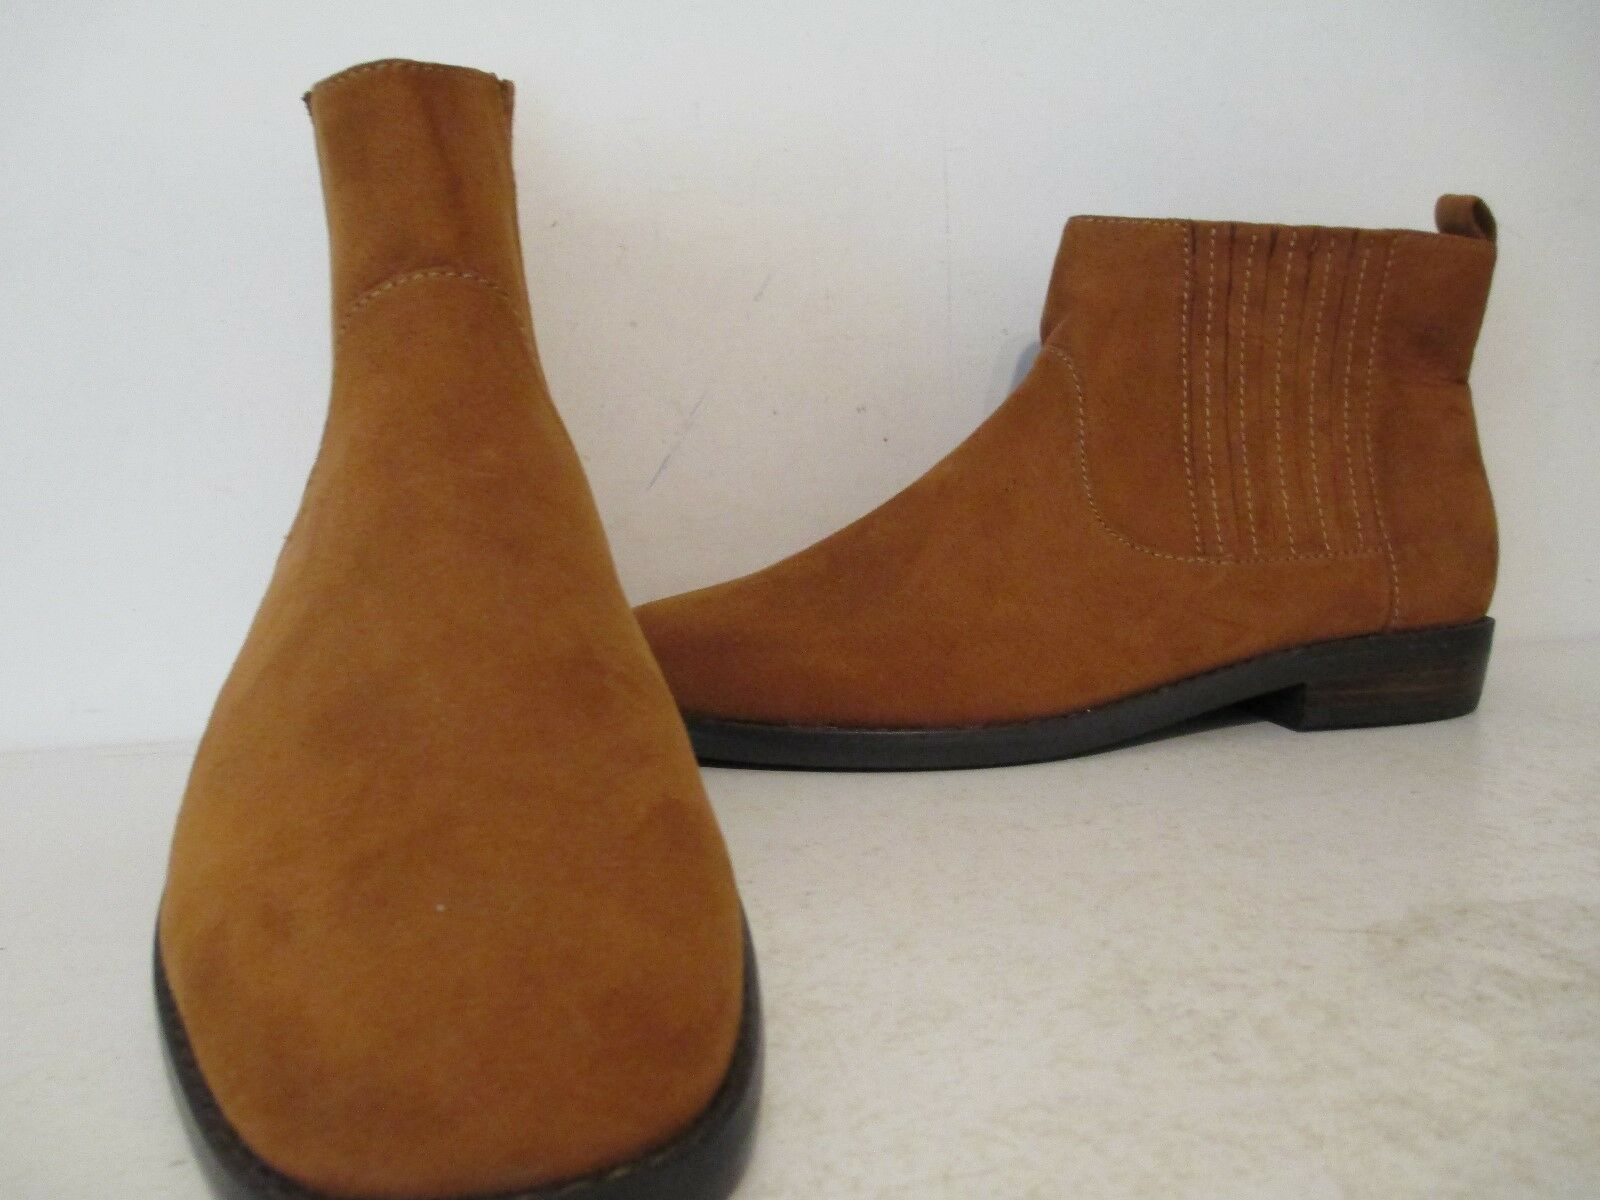 Bass Womens Bridgit Bridgit Bridgit Suede Chic Double Gore Sided Ankle Bootie Toffee Tan Size 6 103dbd